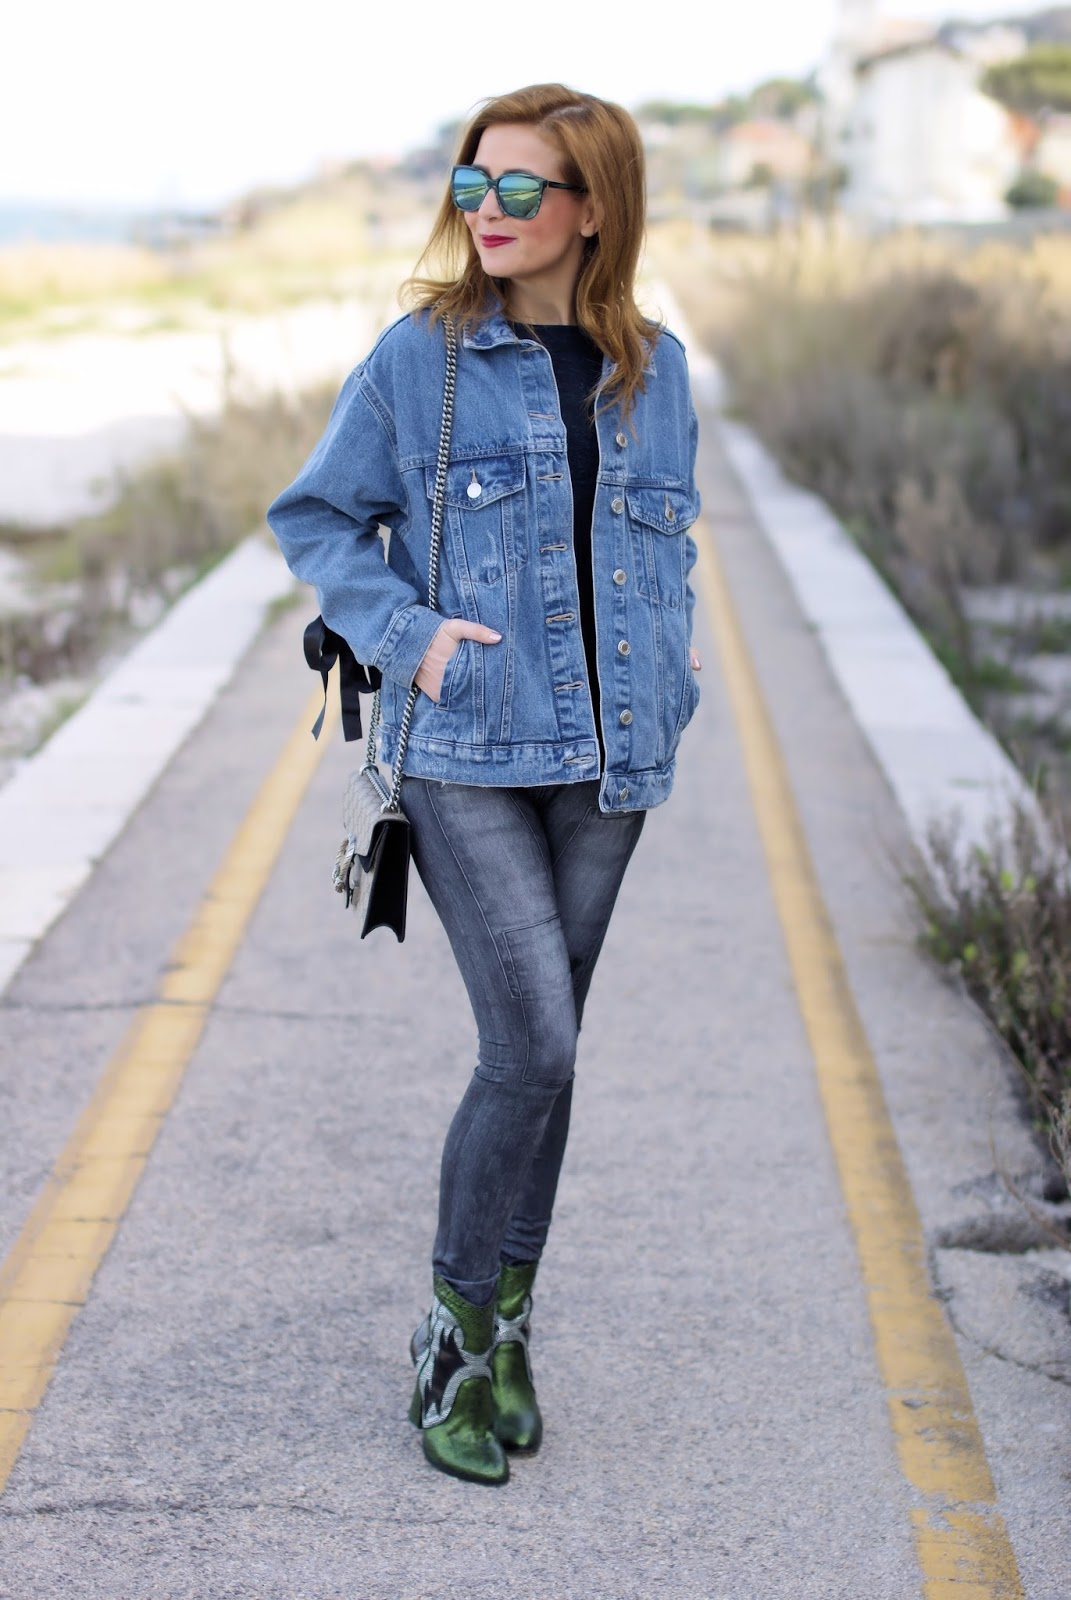 Urban cowgirl fashion: western inspiration on Fashion and Cookies fashion blog, fashion blogger style